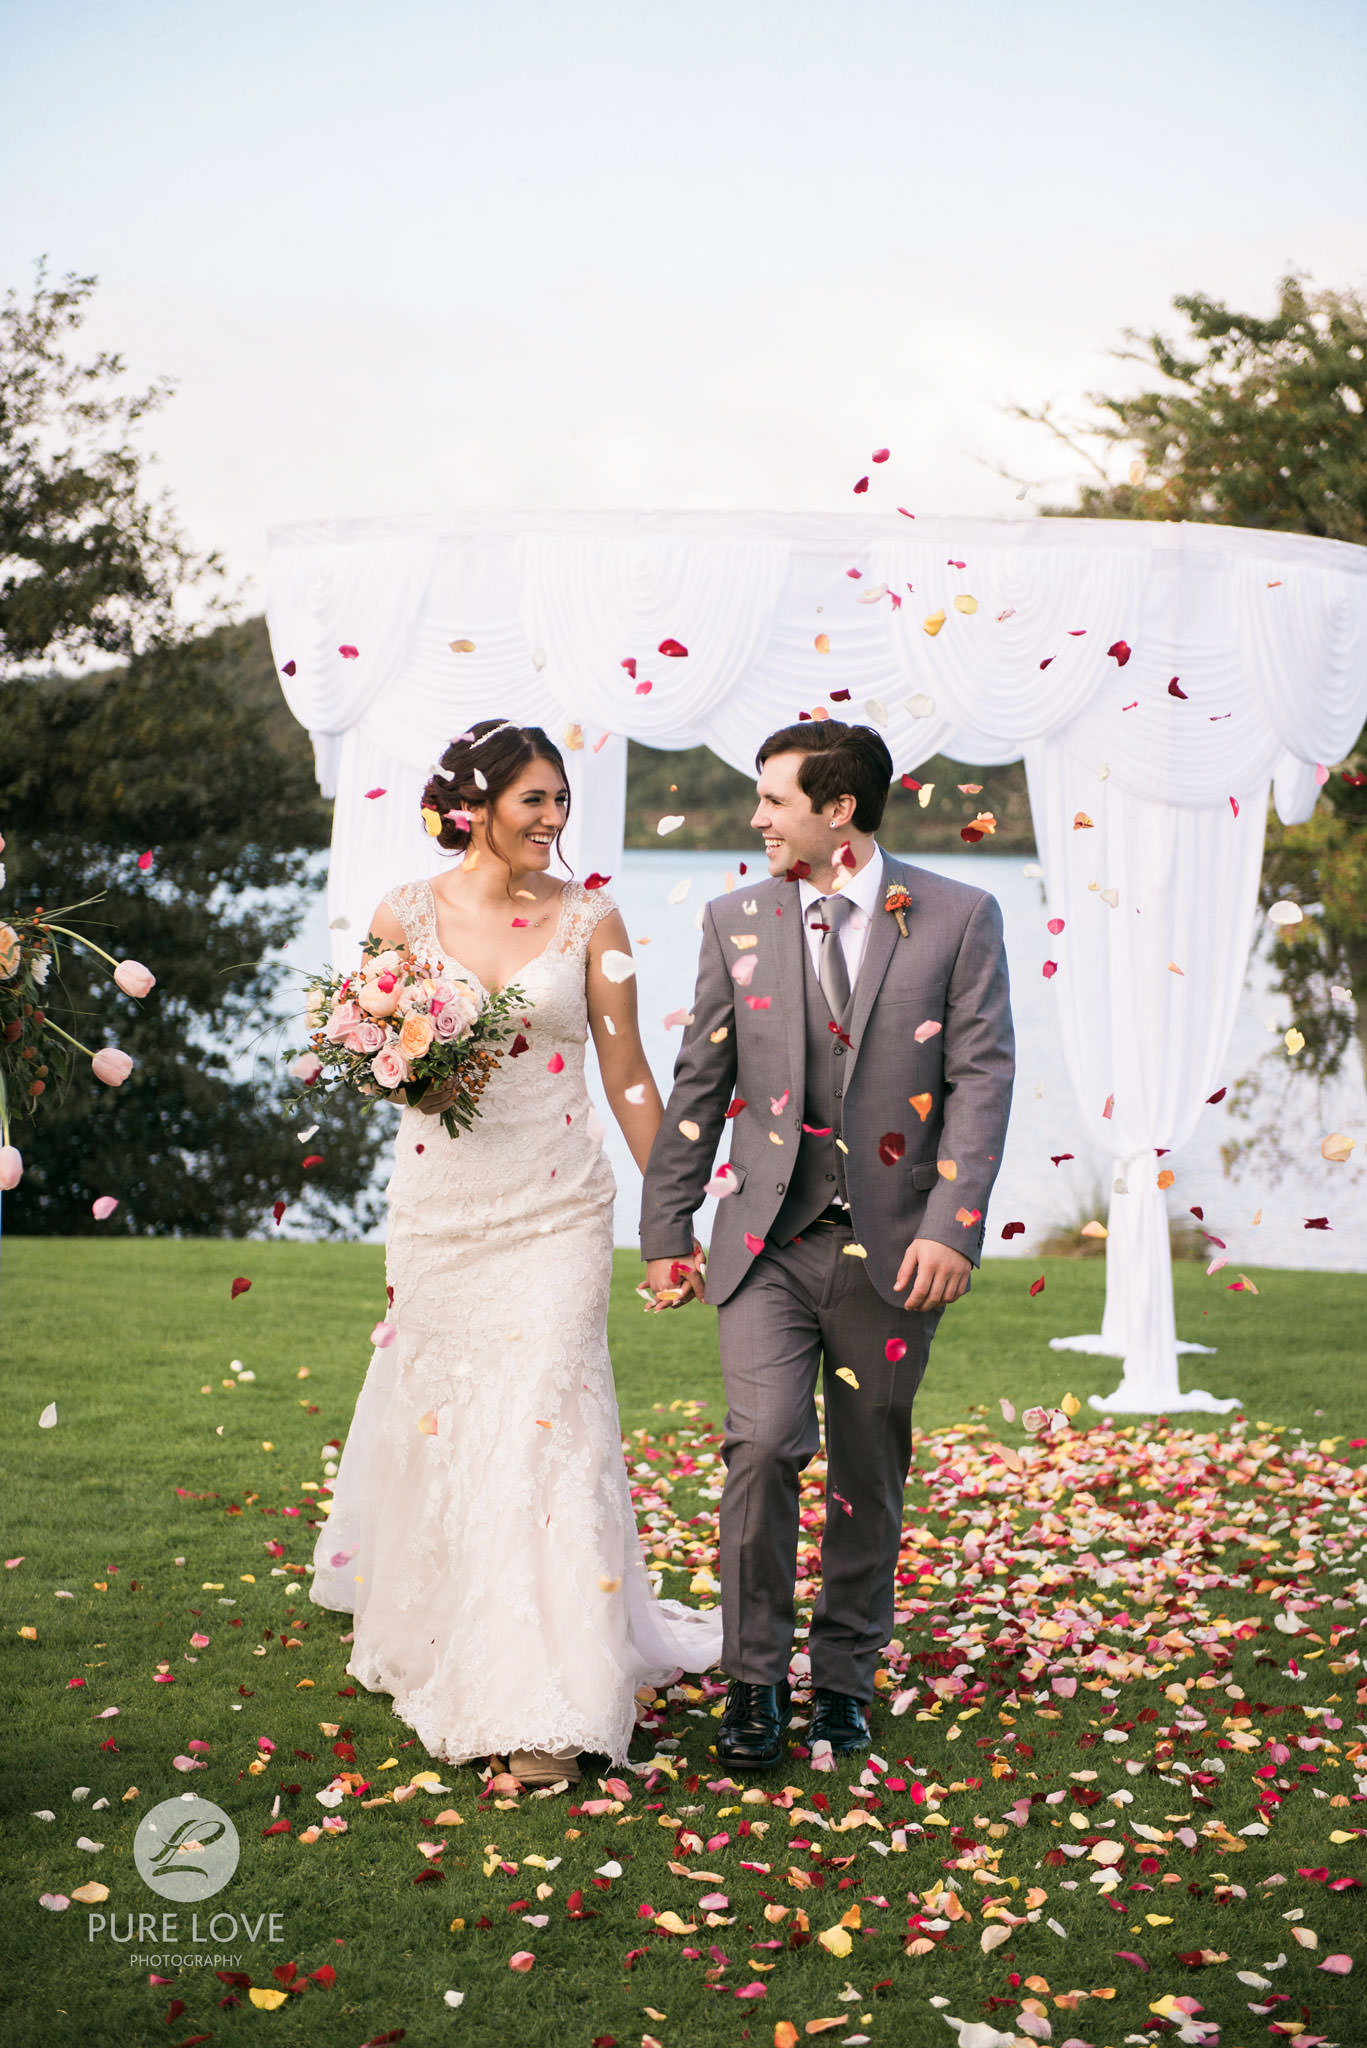 rose petal toss at ceremony exit